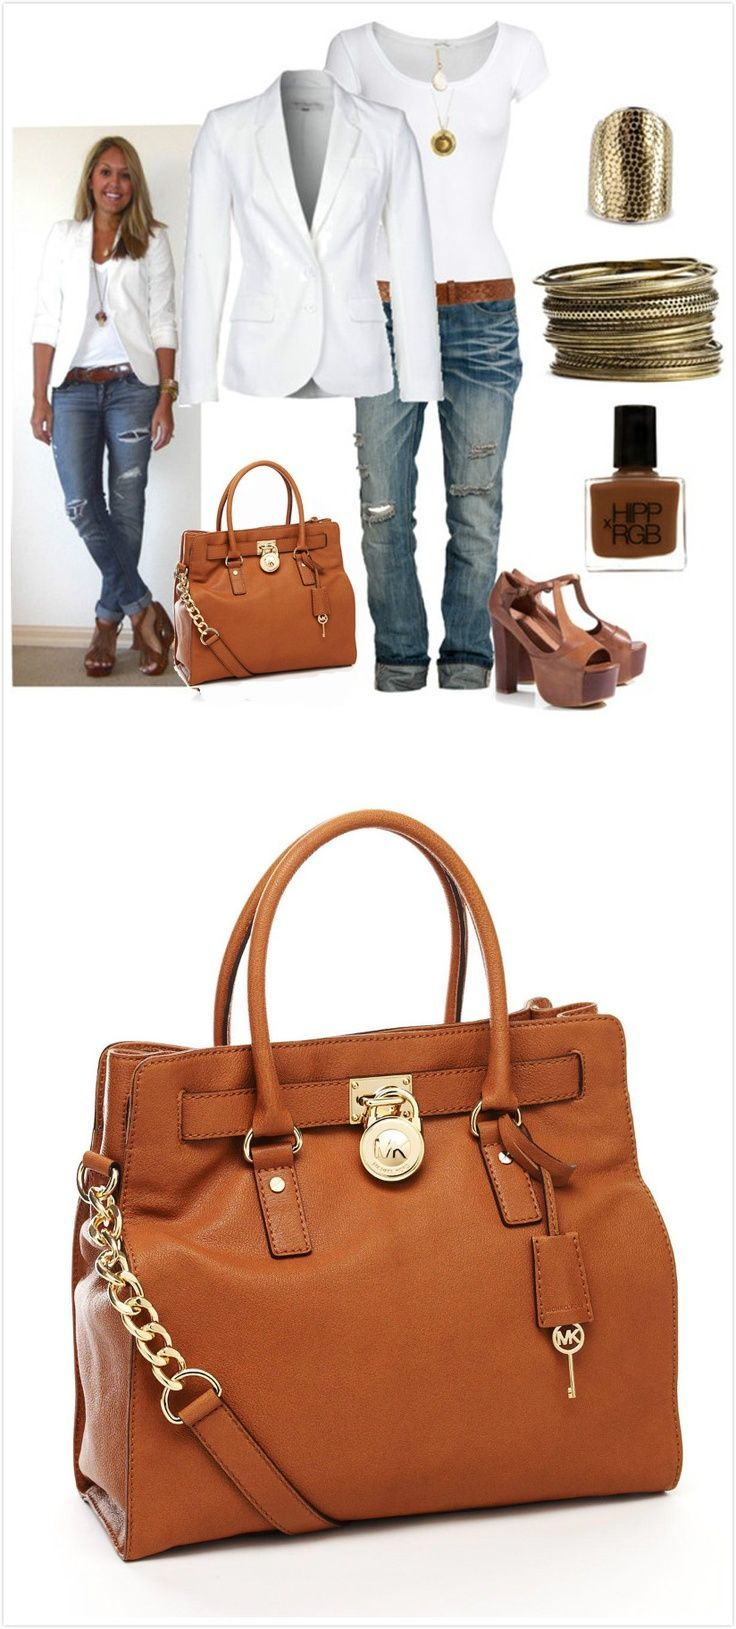 Discount Michael Kors handbags, new style MK bags online outlet...